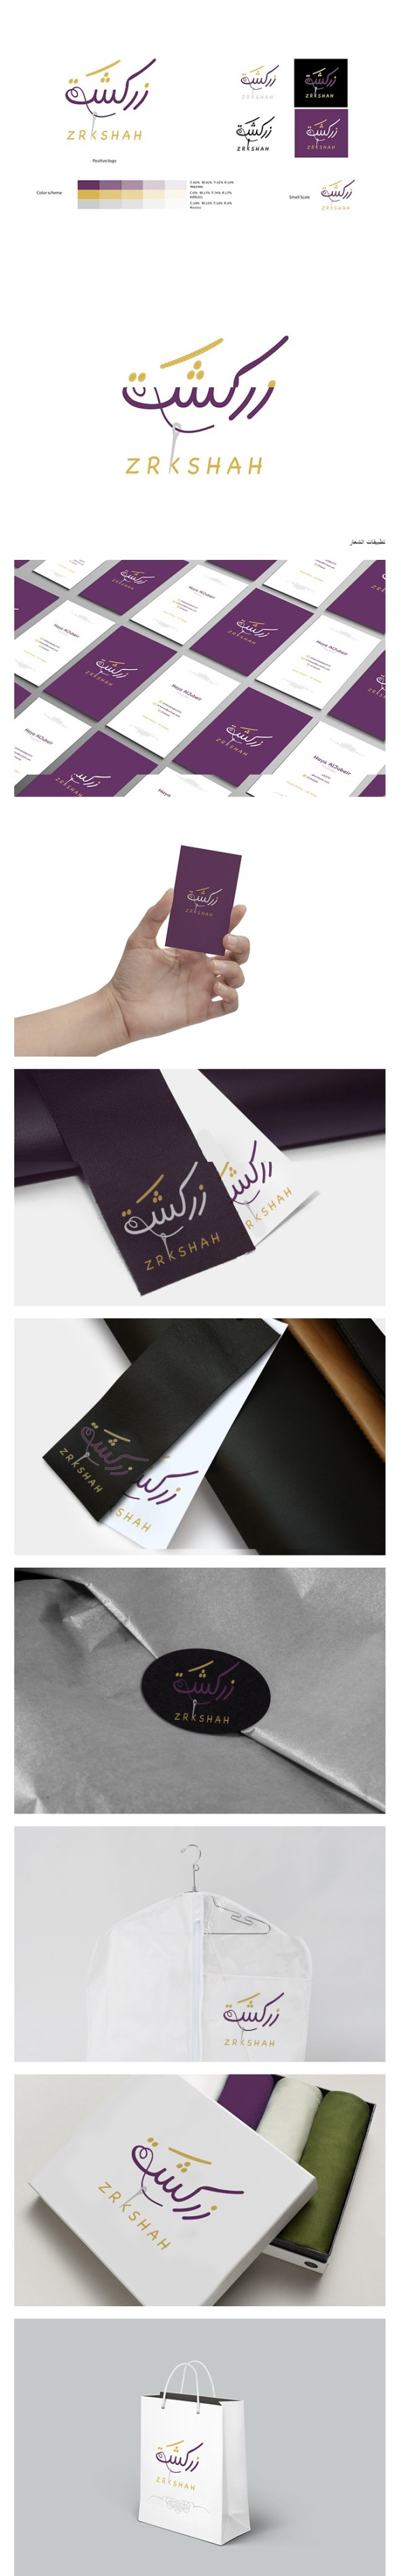 Zrkshah Identity on Behance